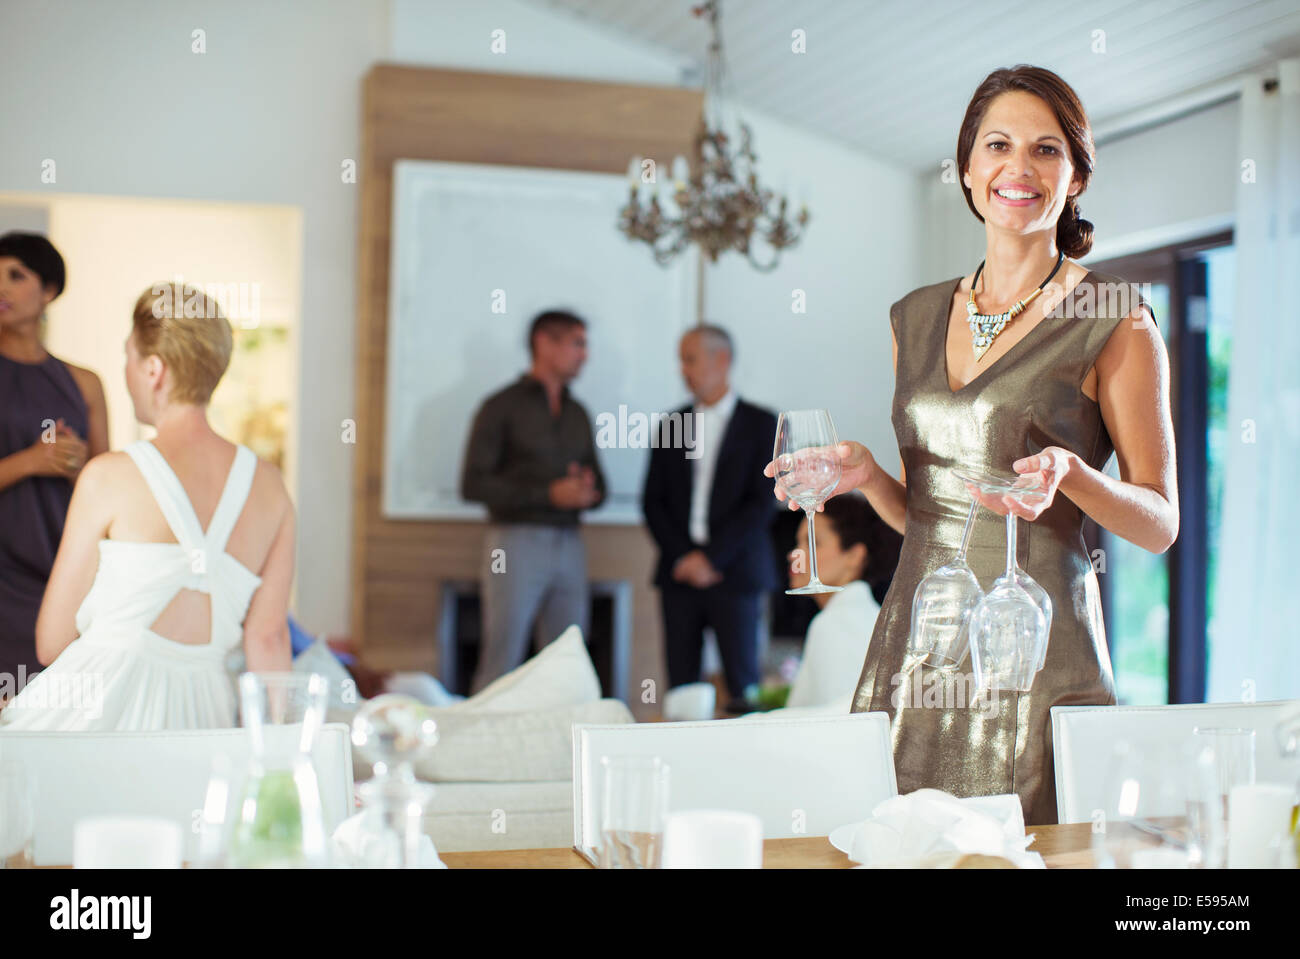 Woman setting table at dinner party - Stock Image